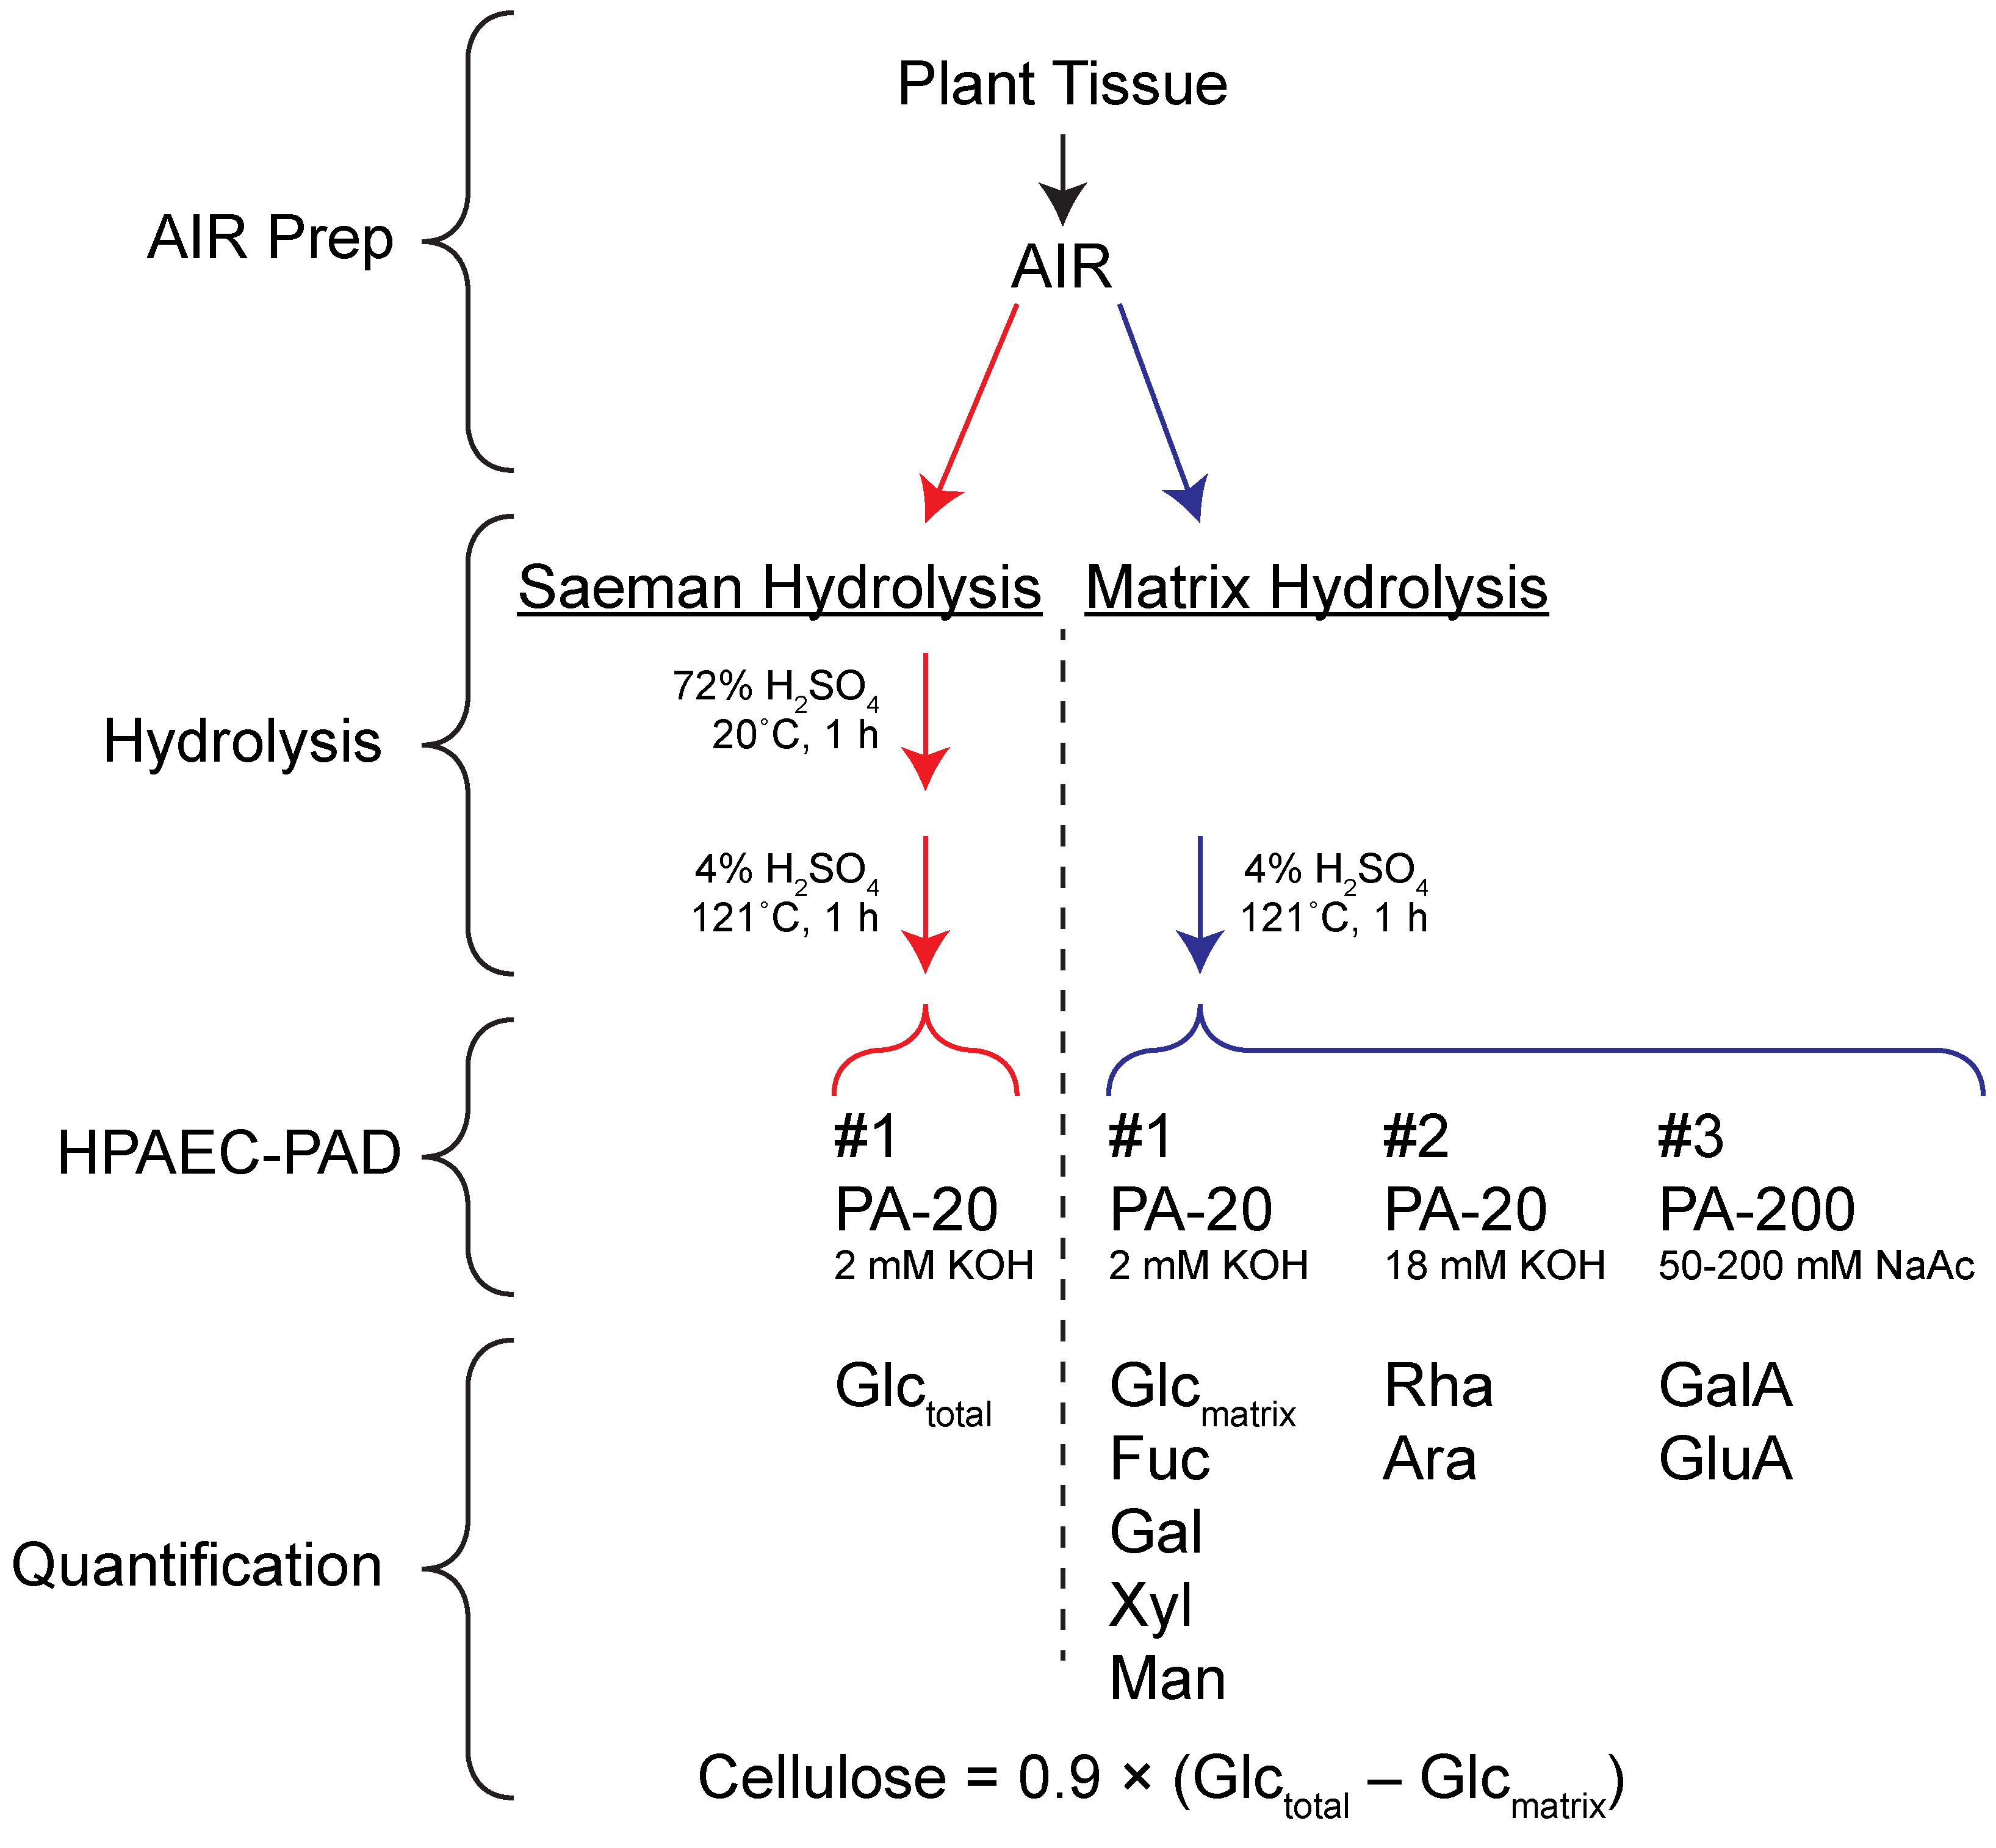 Rapid Determination of Cellulose, Neutral Sugars, and